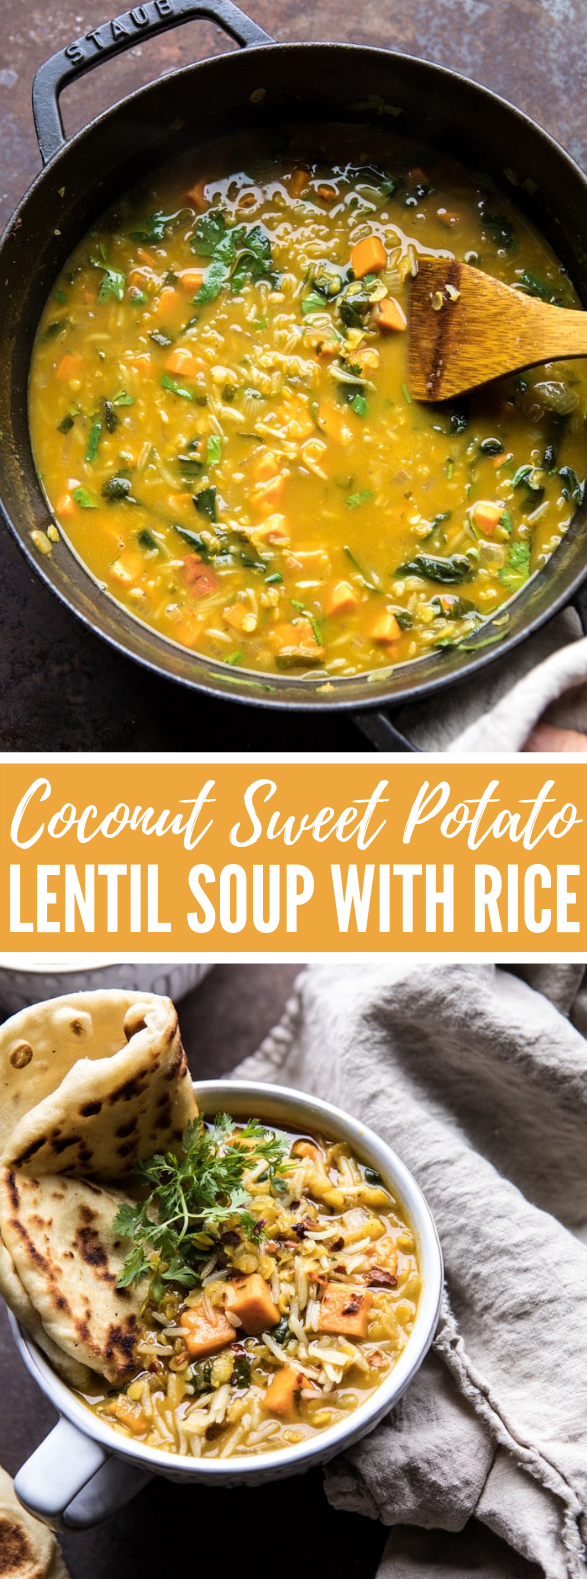 Coconut Sweet Potato Lentil Soup with Rice #vegetarian #lunch